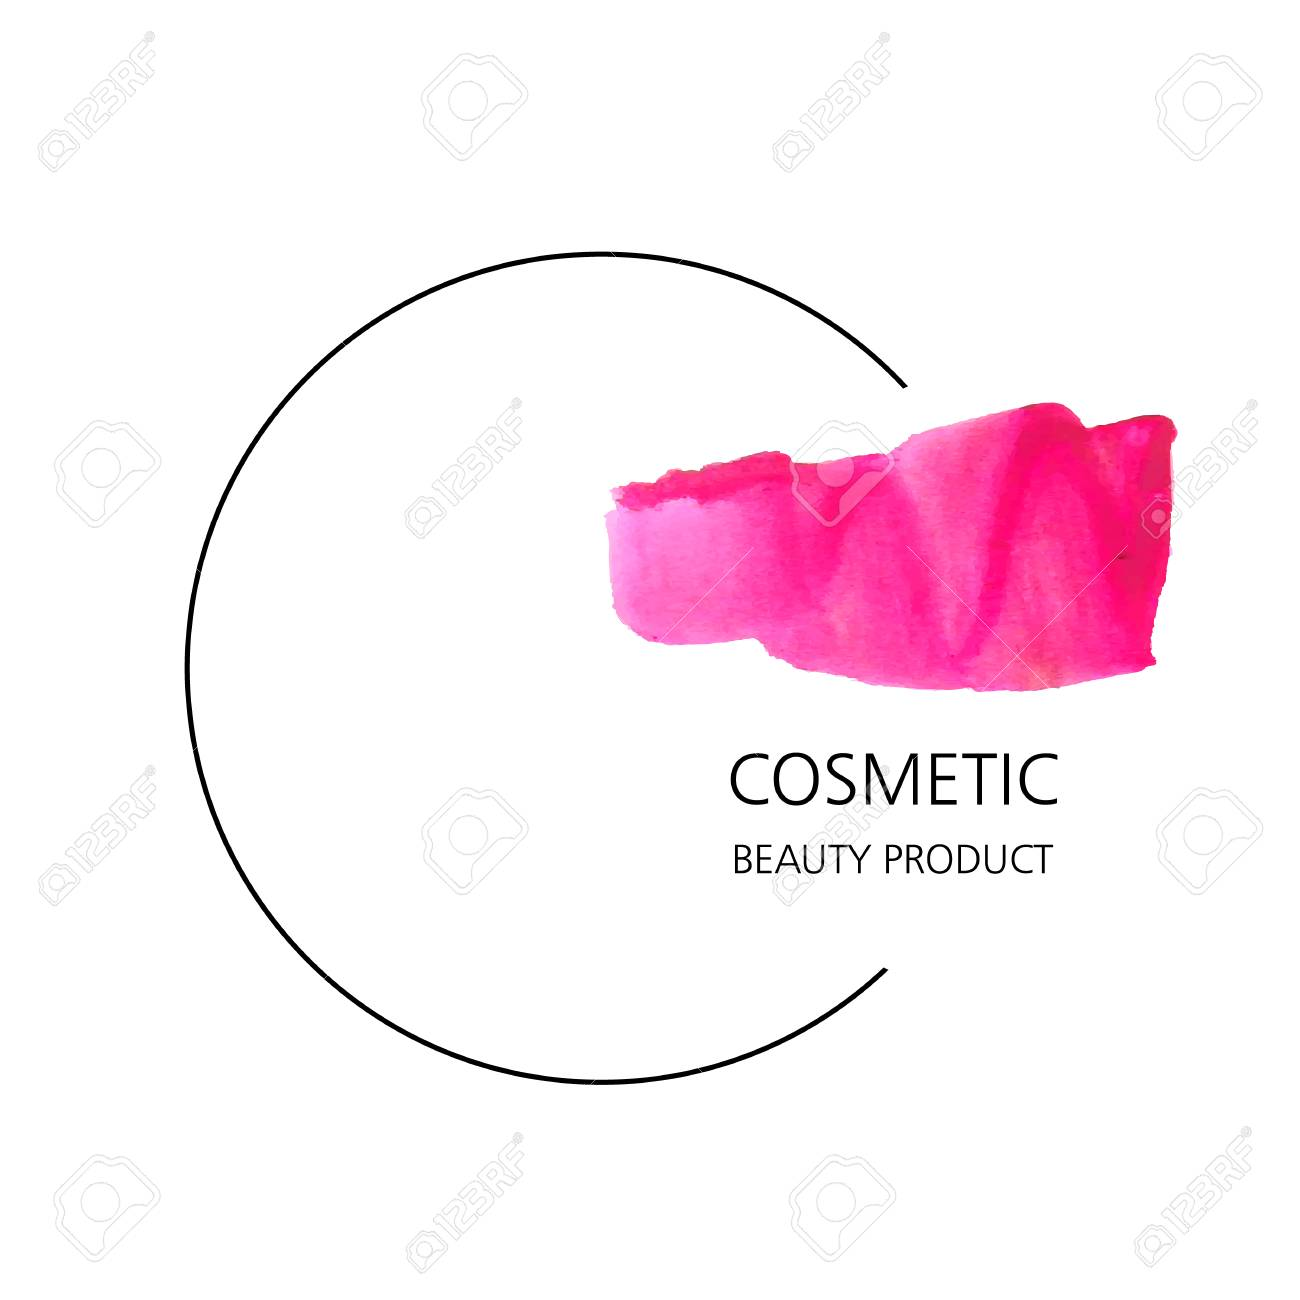 cosmetic product vector icon template with drawn smear of lipstick